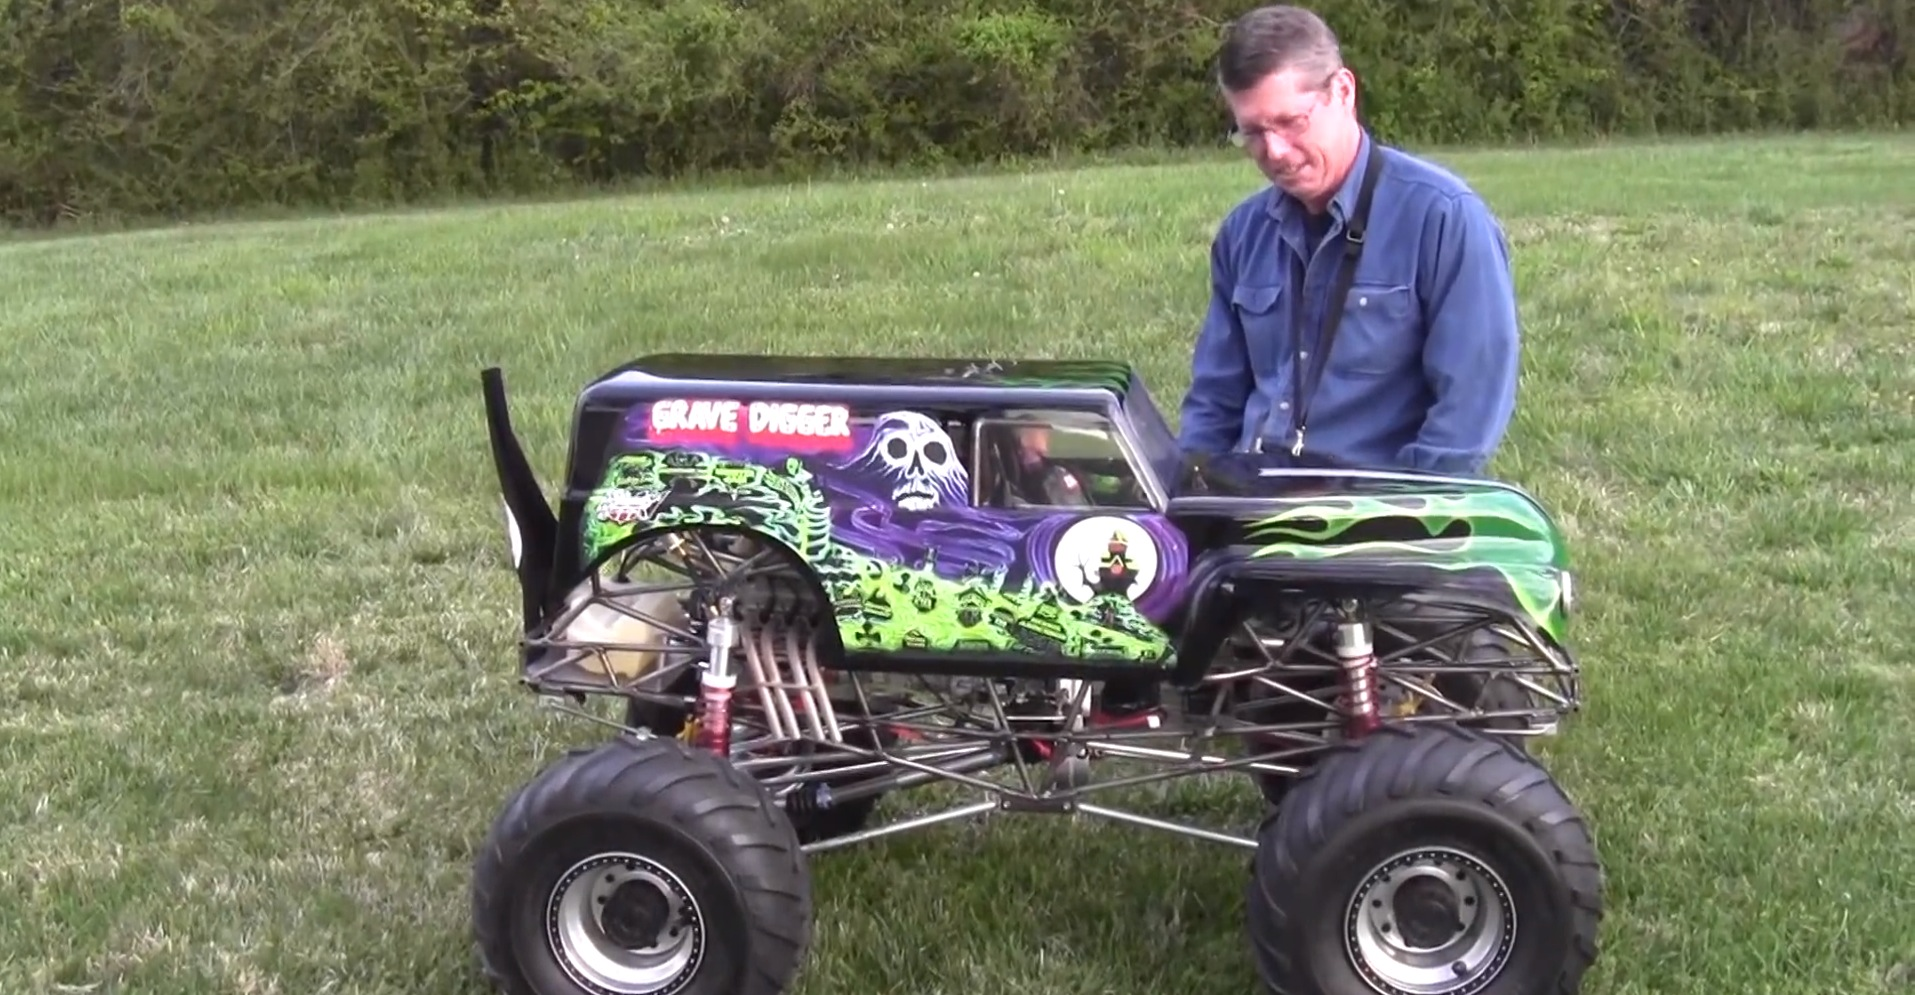 cheap nitro rc gas trucks with The Coolest 1 4 Scale Monster Truck Ever  Plete With Killer V8 Video 85179 on Showthread furthermore Gas Rc Trucks 4x4 18729 likewise GATEWAY Handrail R as well Remote Control Toys Rc Helicopters Rc Cars as well Motorlust.